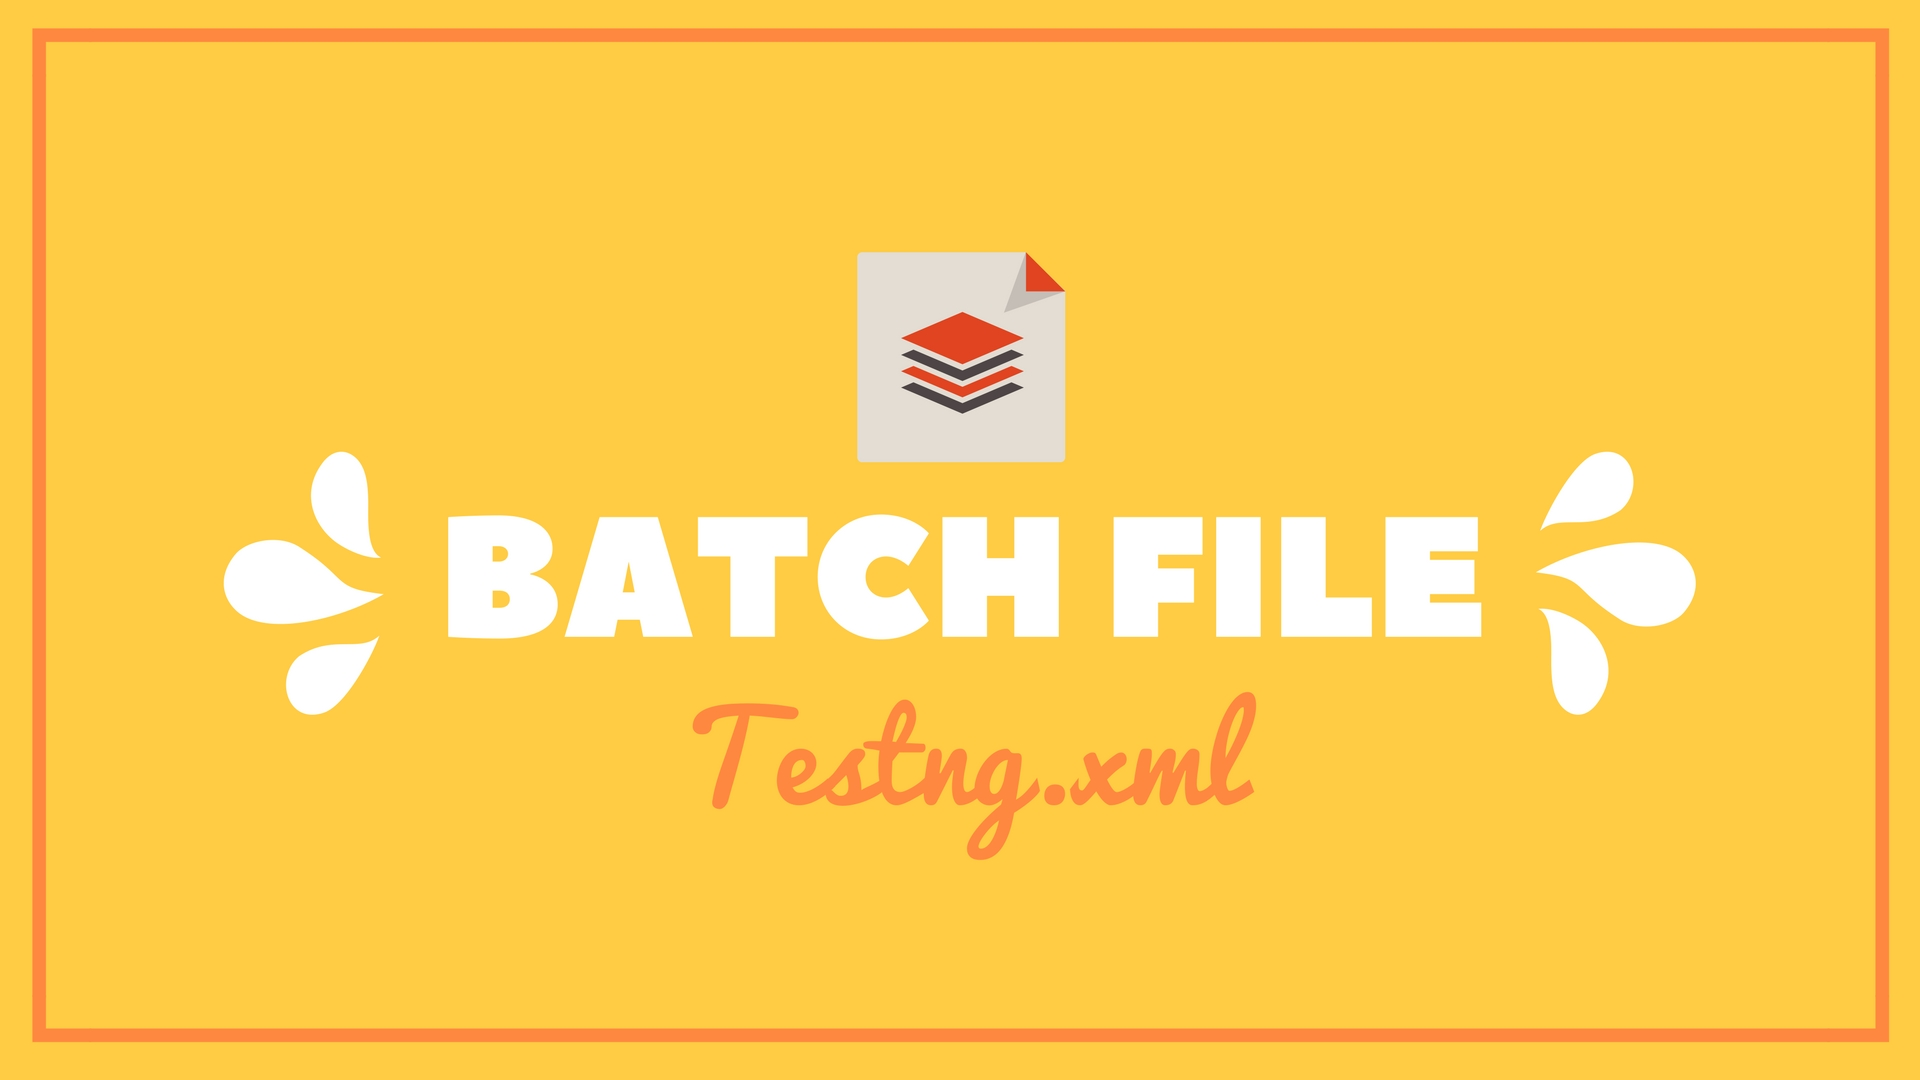 How to Create a Batch File to Run Testng xml | Dumb IT Dude